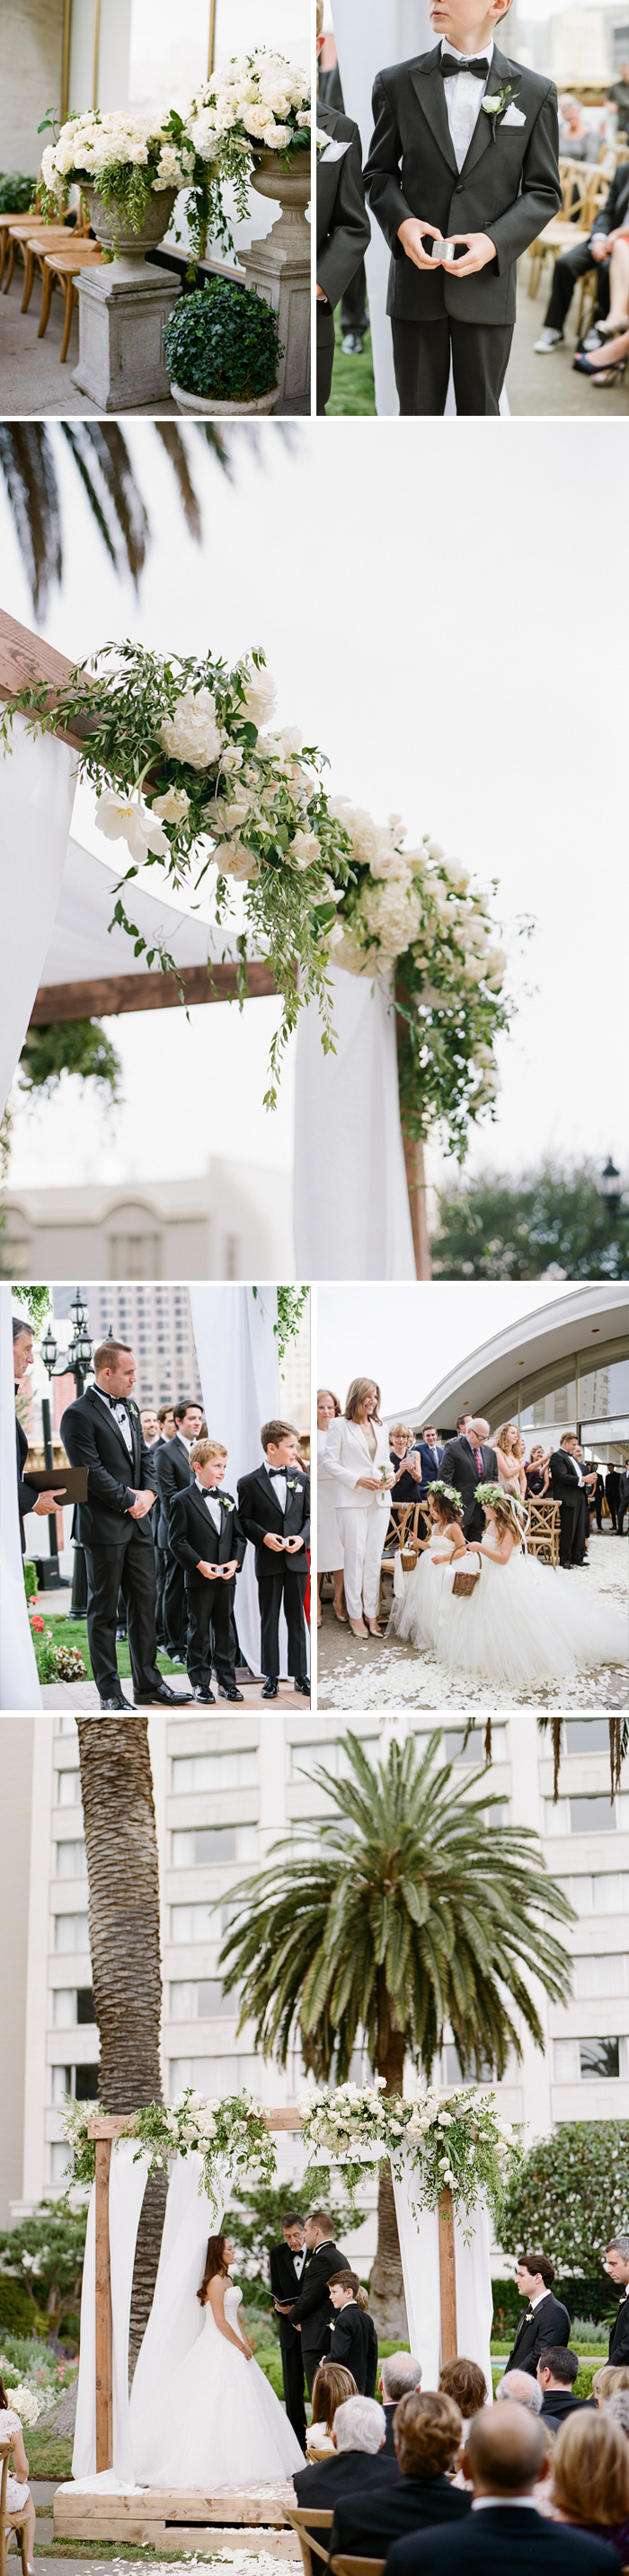 The ceremony space, a ringbearer stands by the arbor, flower girls proceed up the aisle, Meg & Ben exchange vows; photo by Sylvie Gil